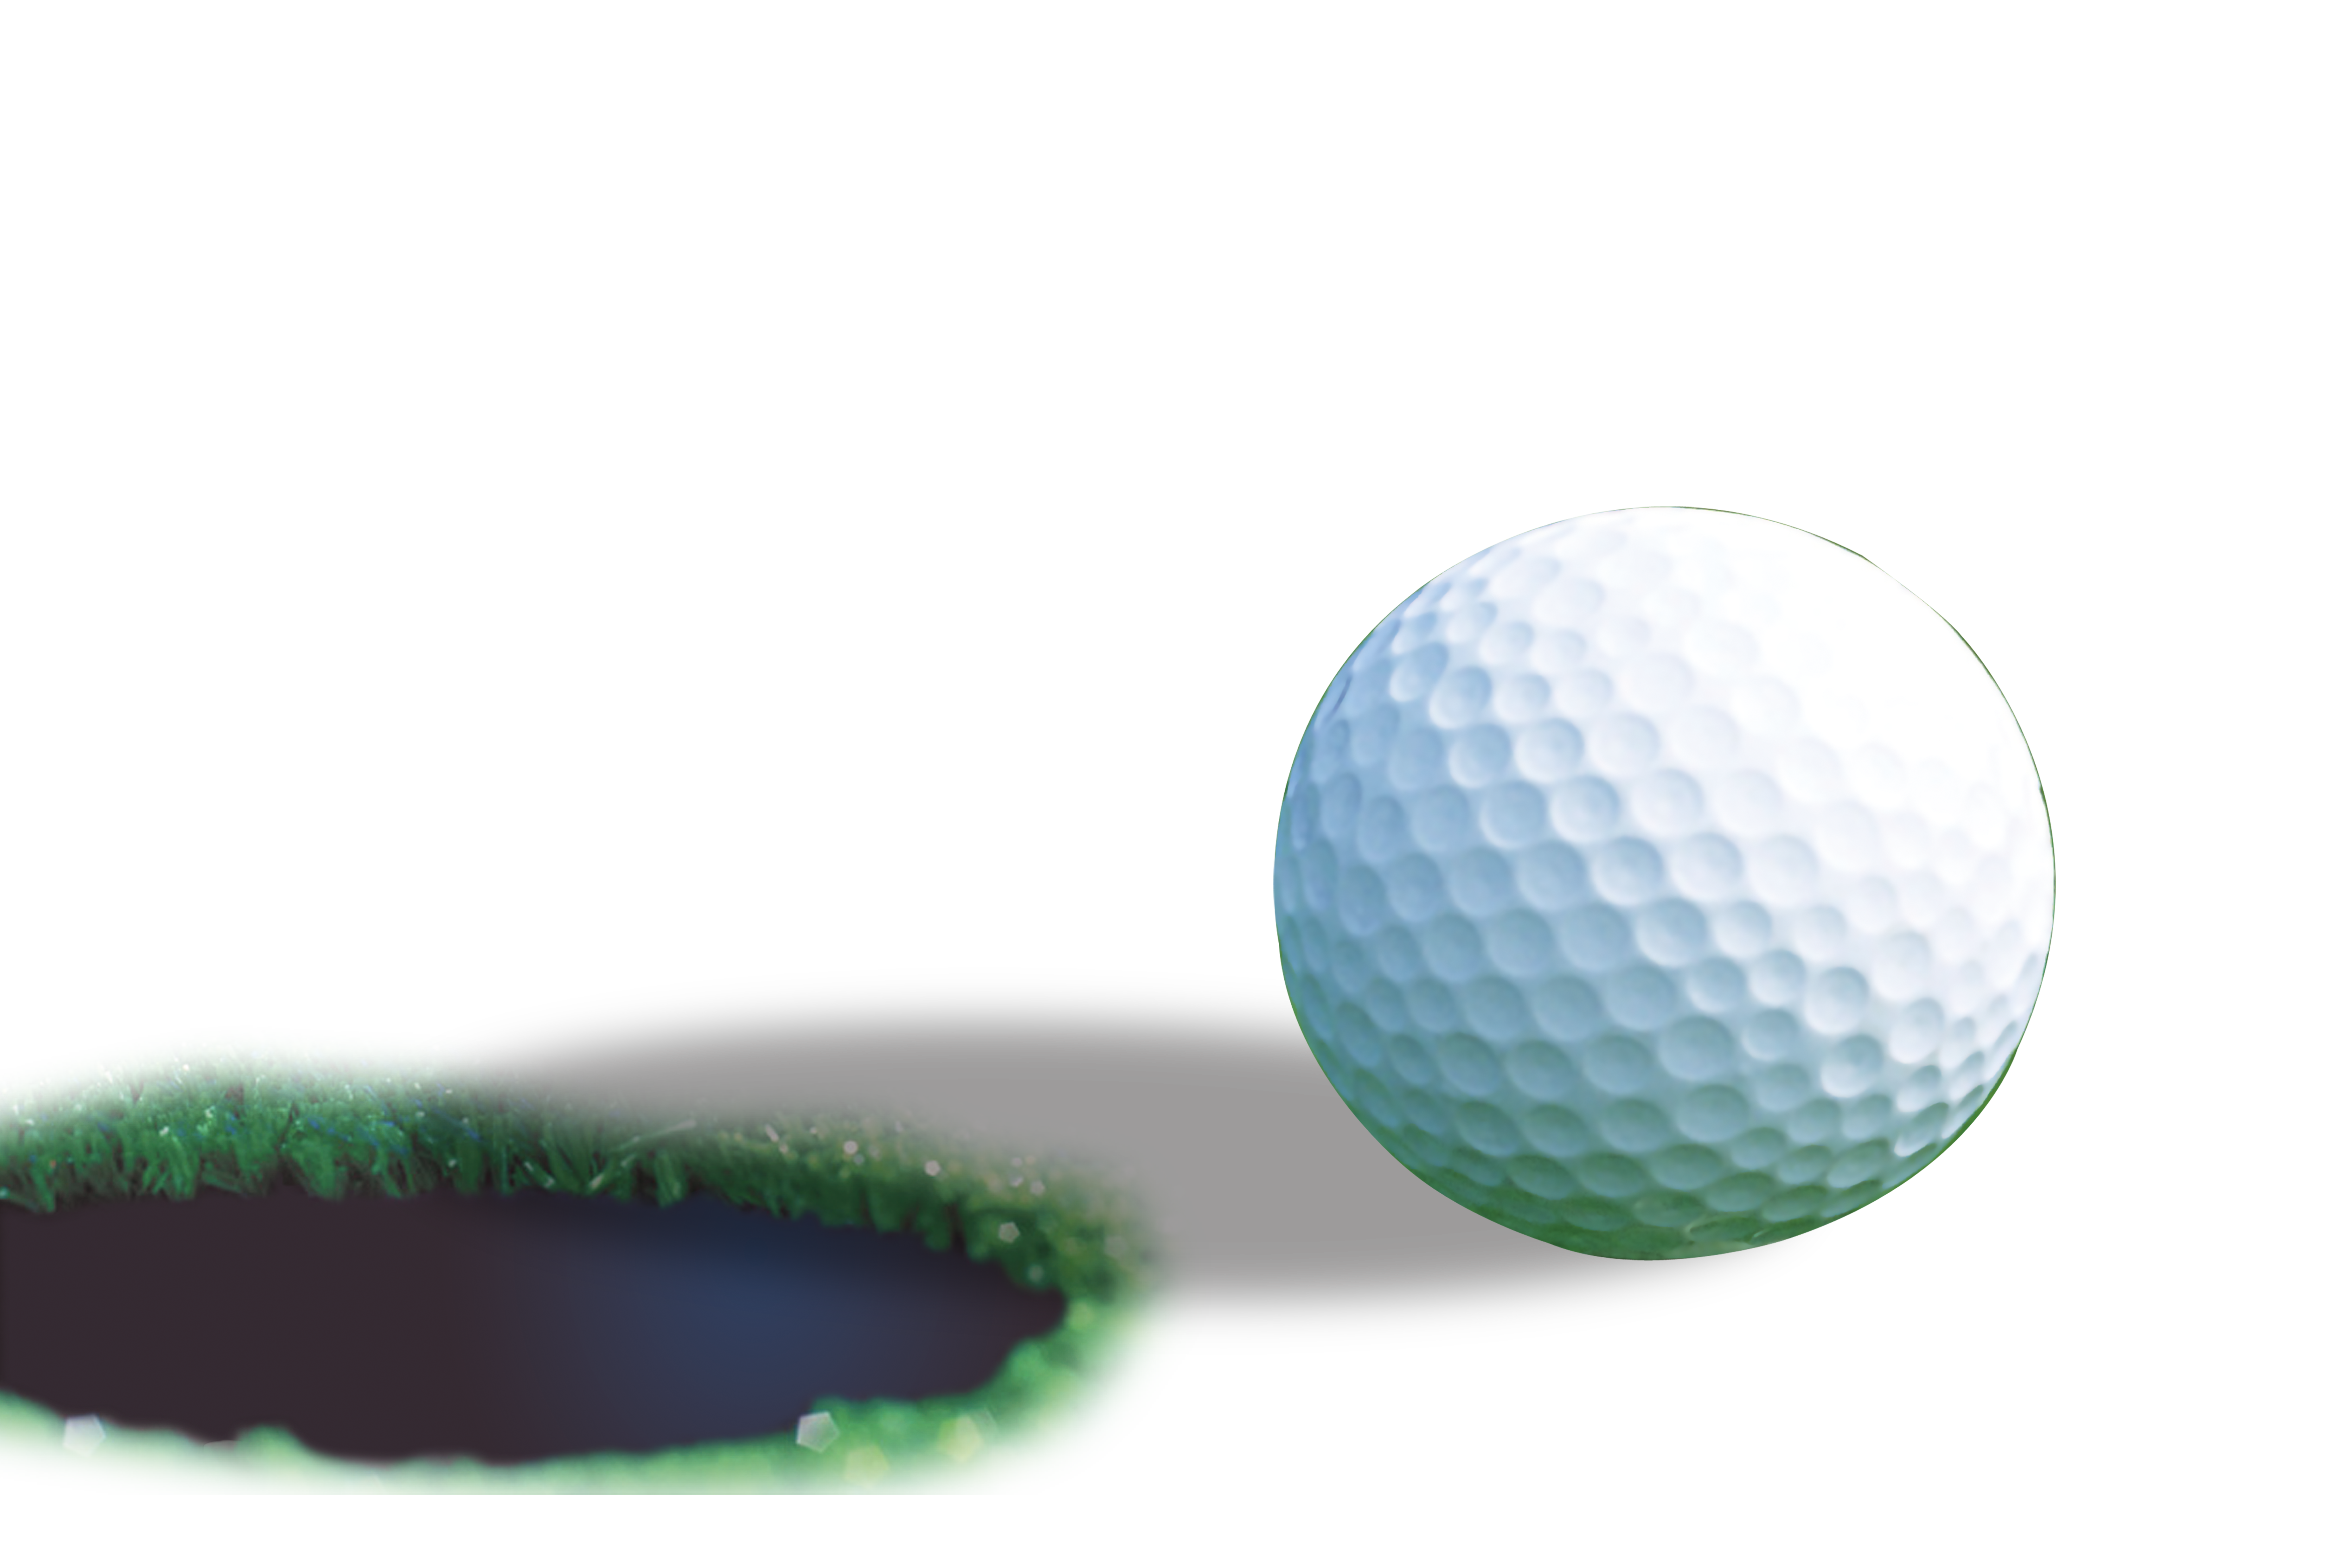 Png golf ball. Transprent free download computer